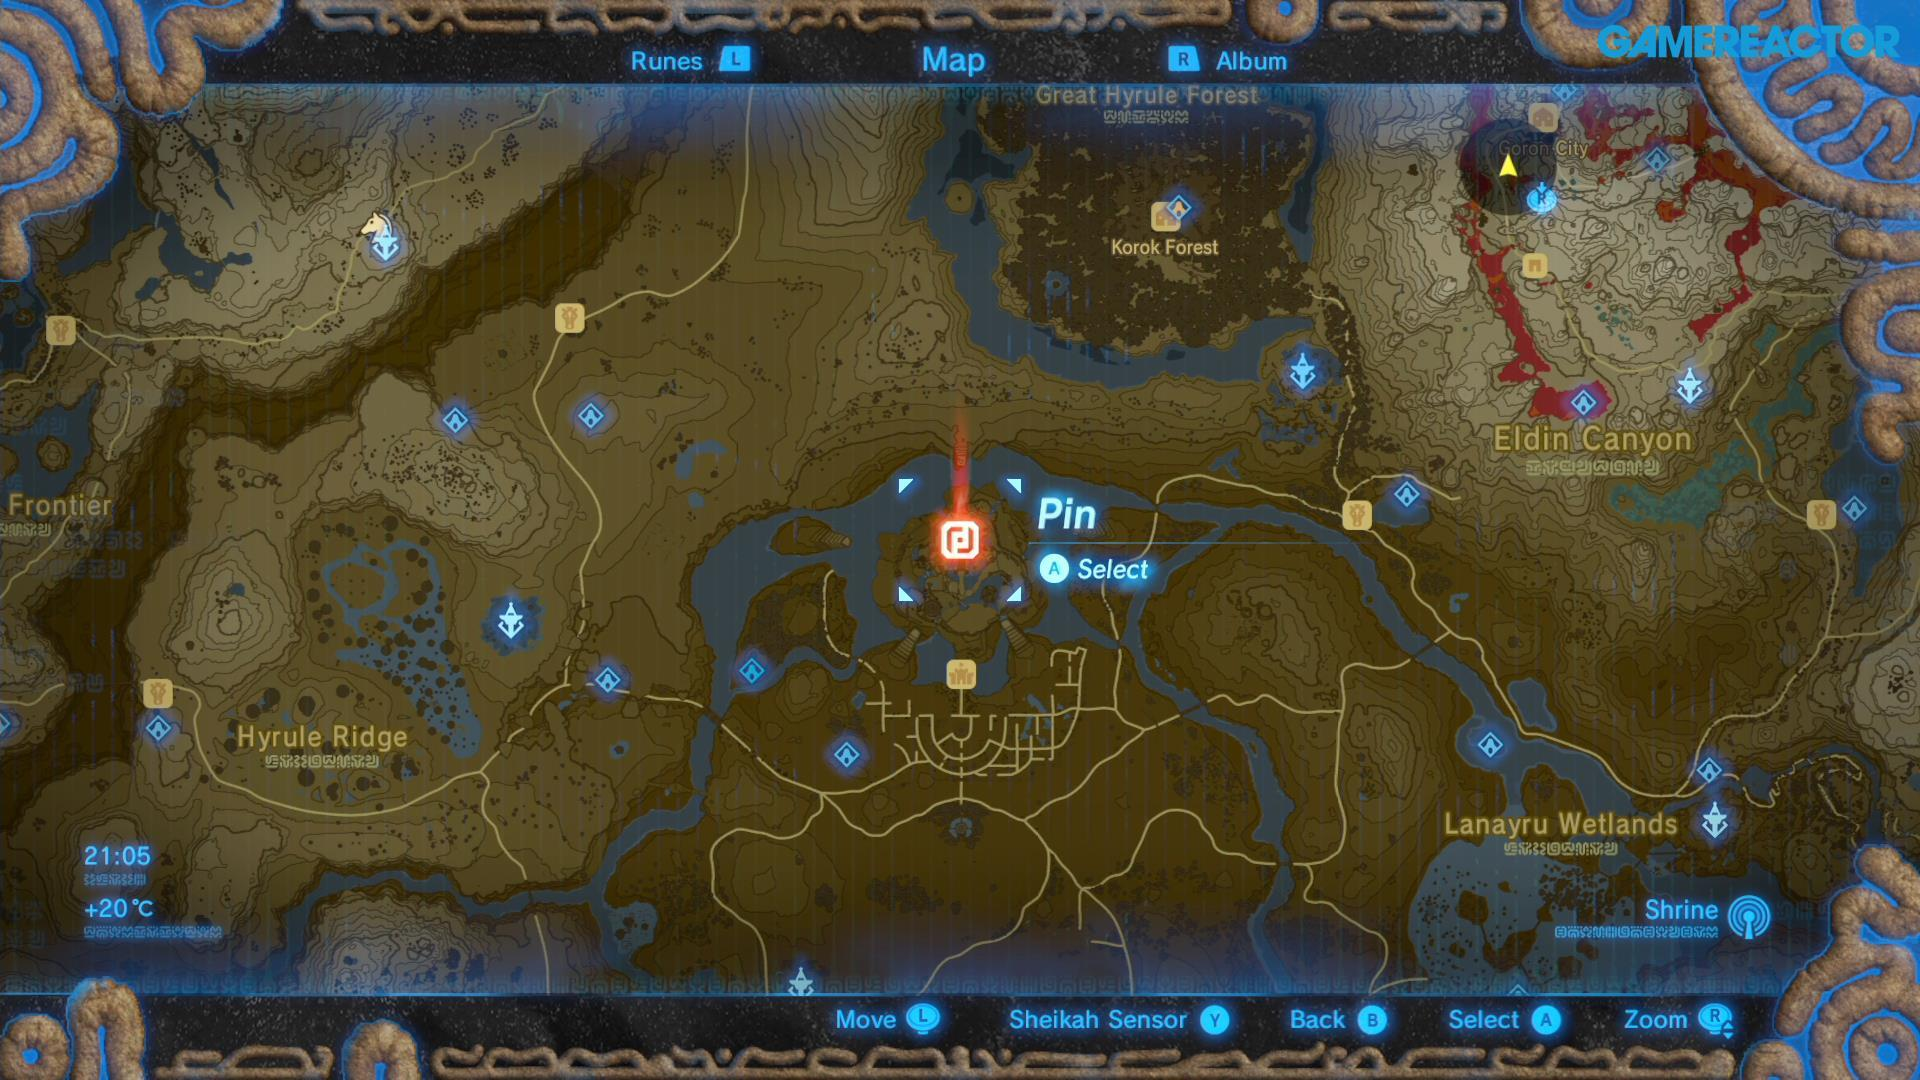 Pictures Of The Secrets Of The Legend Of Zelda Breath Of The Wild 17 21